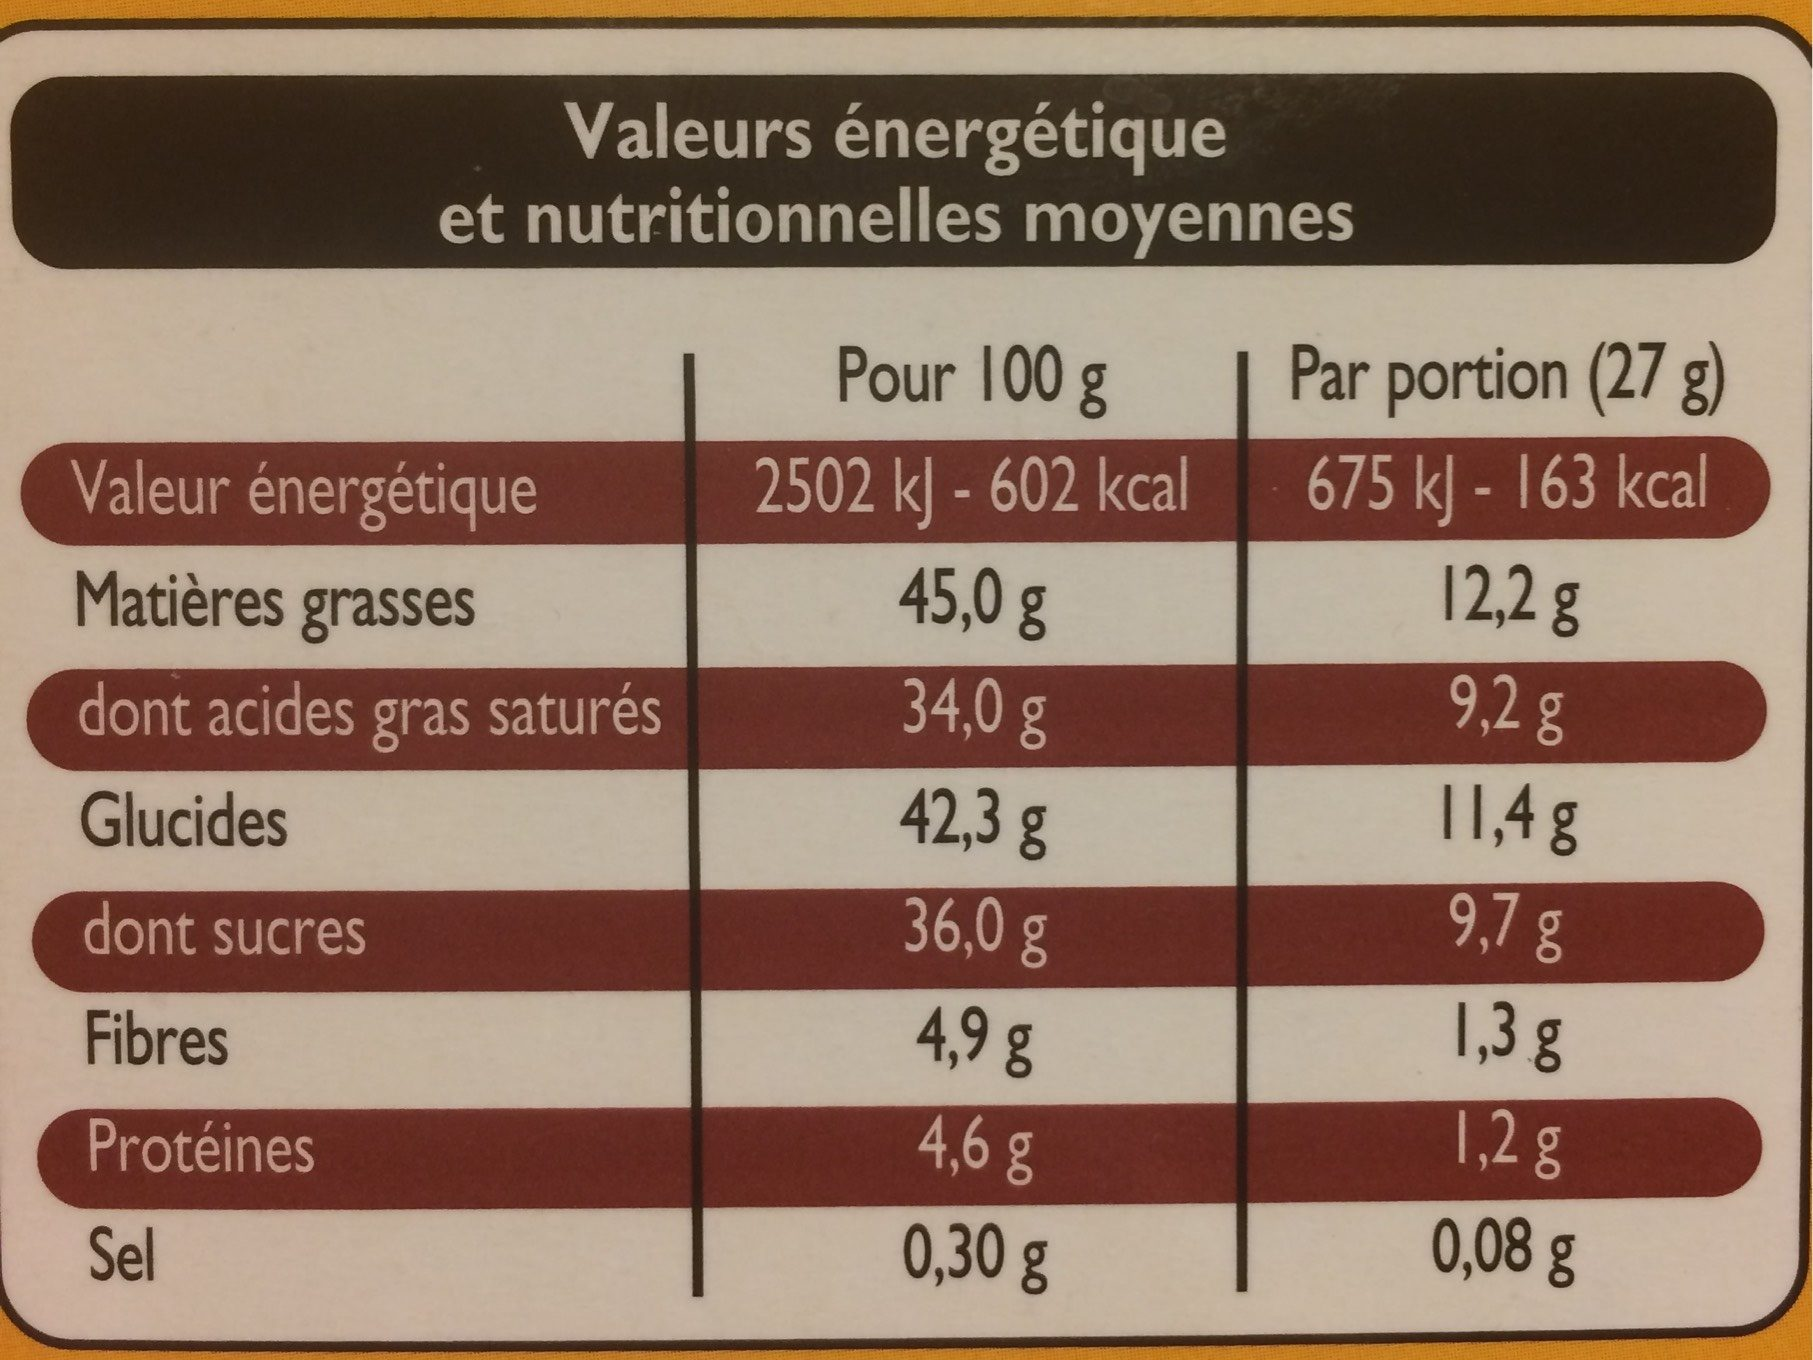 Truffes ecorces d'orange - Nutrition facts